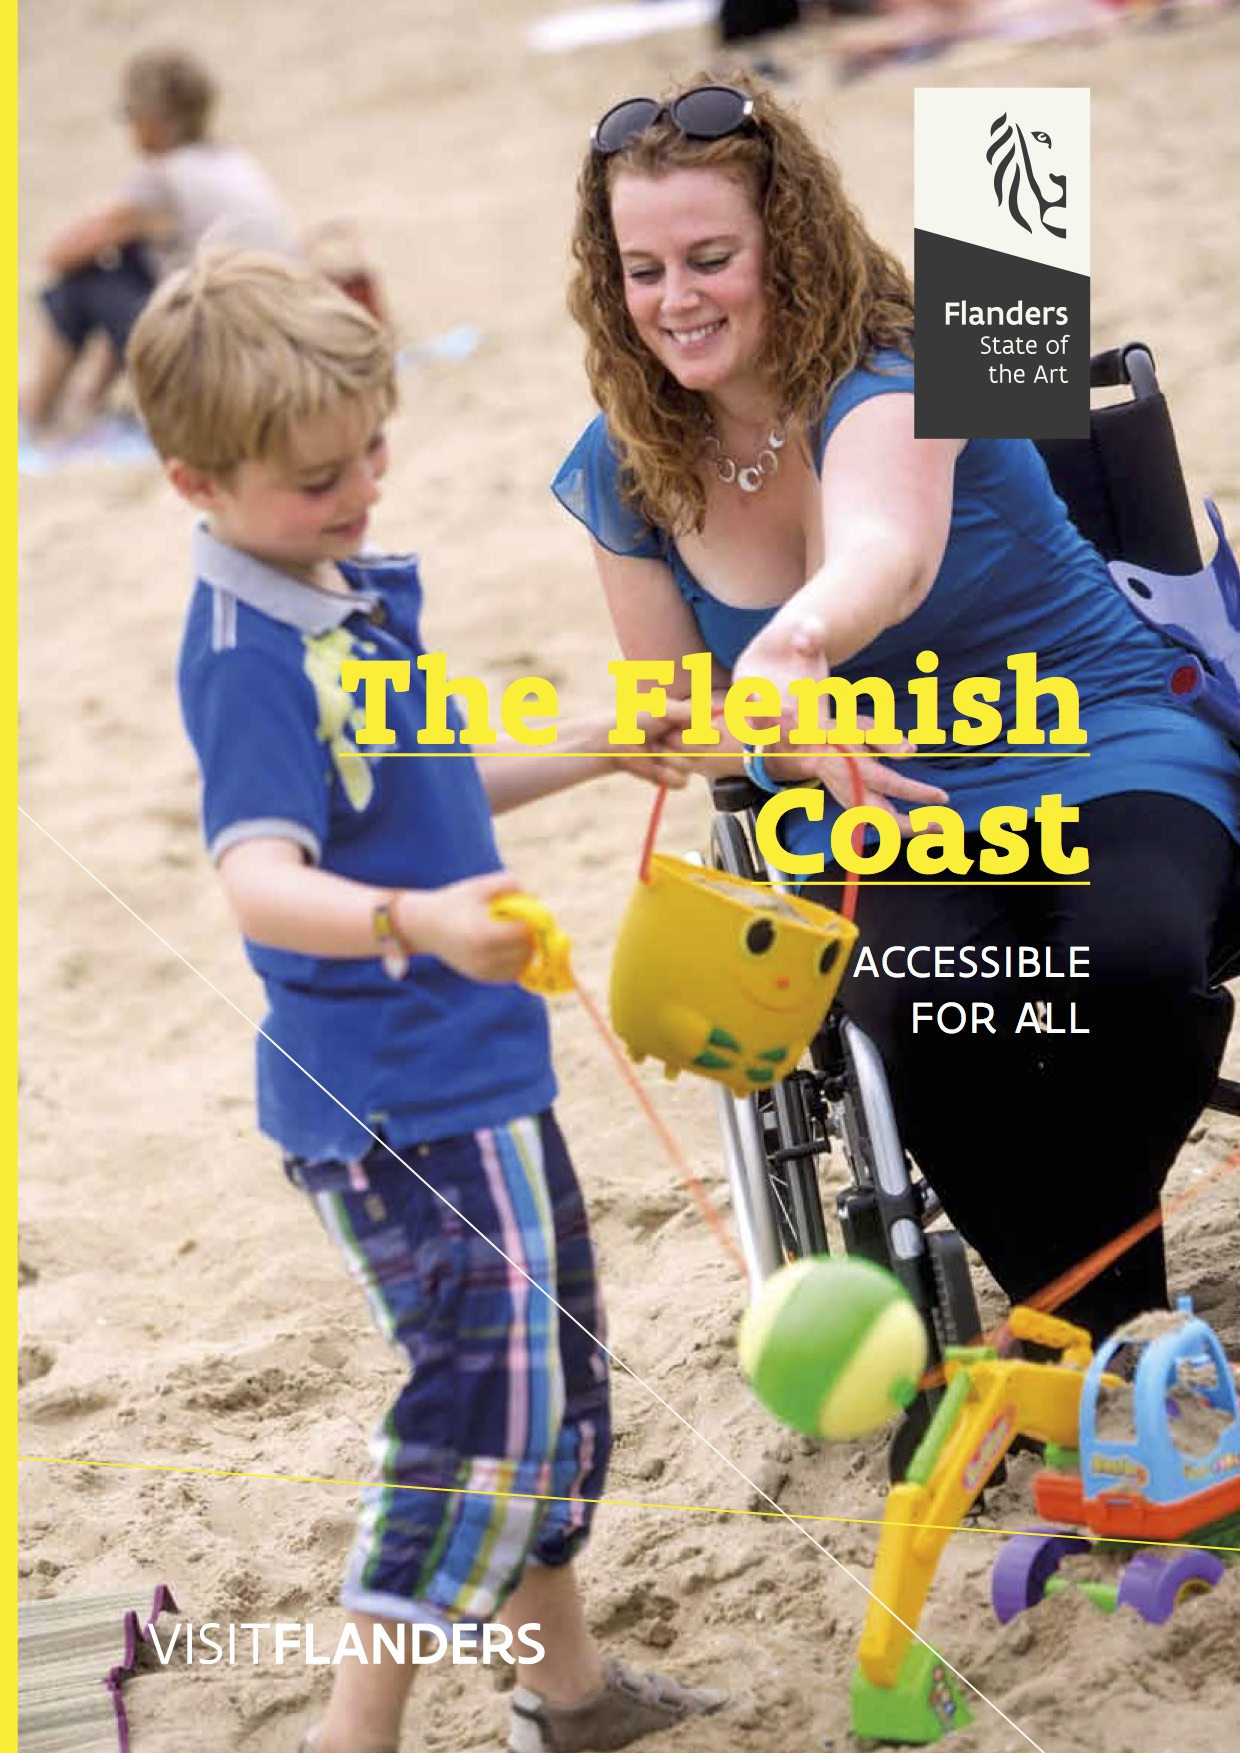 The Flemish Coast - cover image, wheelchair user and child on beach play with sand toys